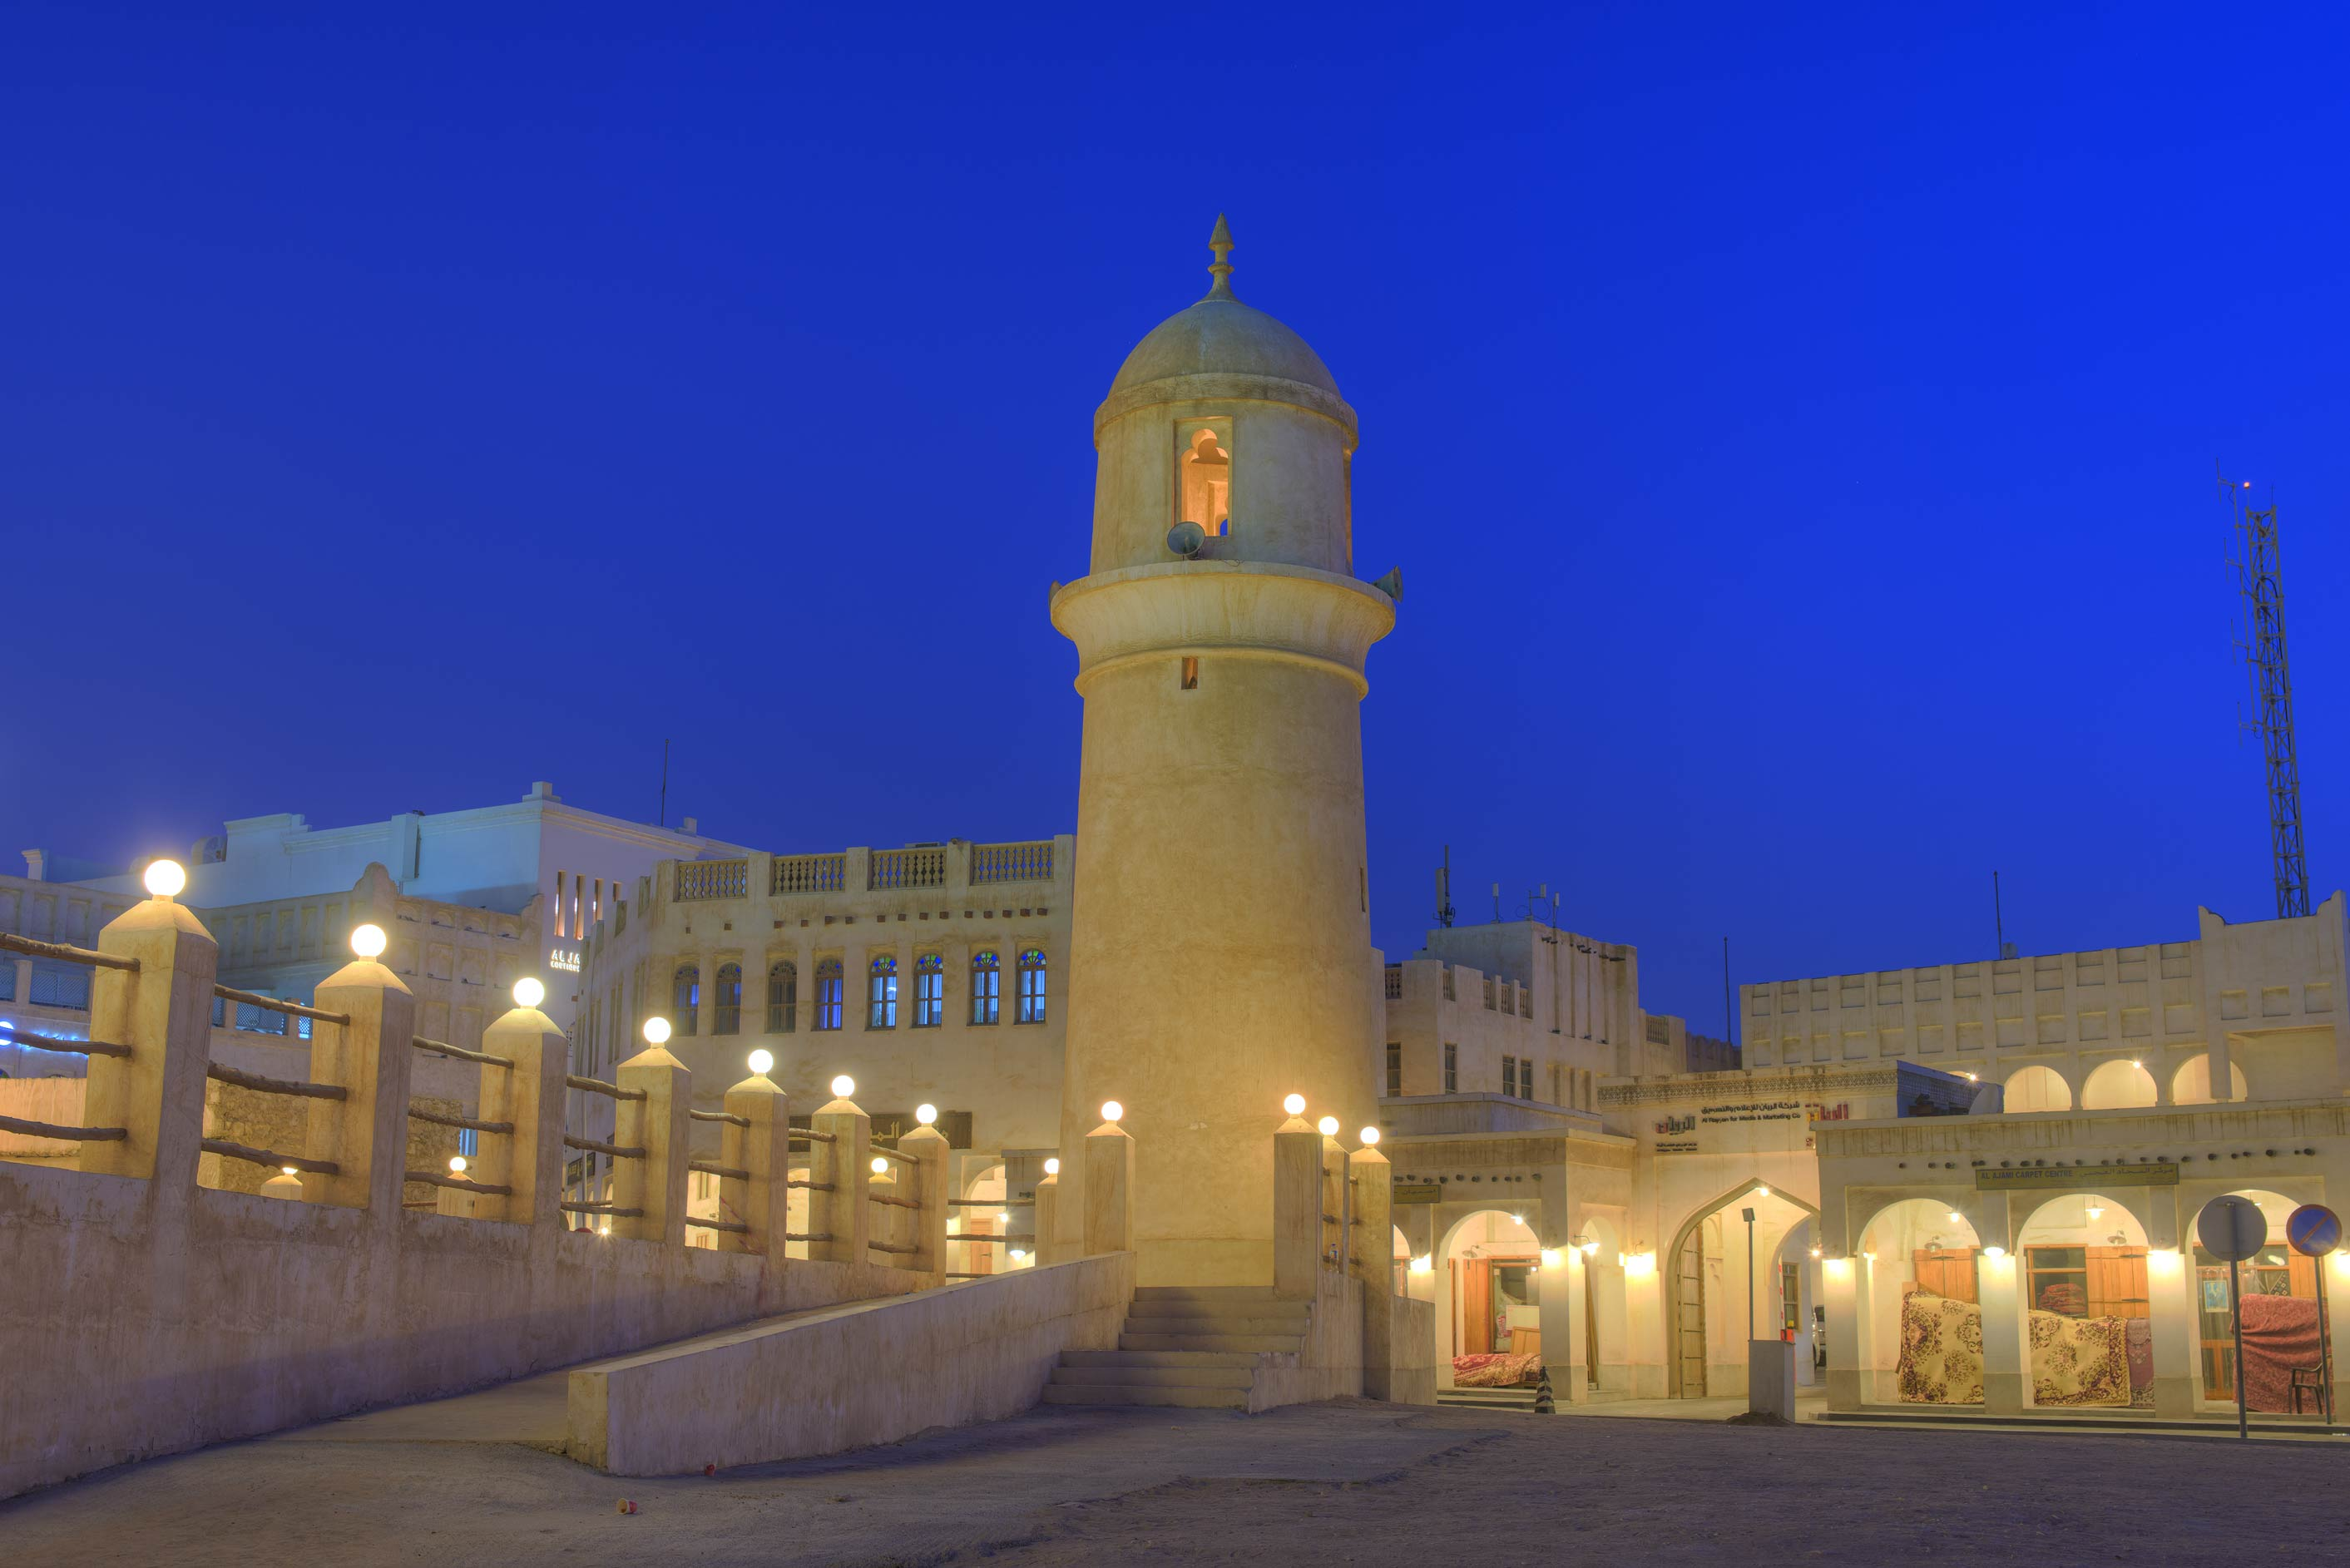 Souq Waqif Mosque at morning. Doha, Qatar